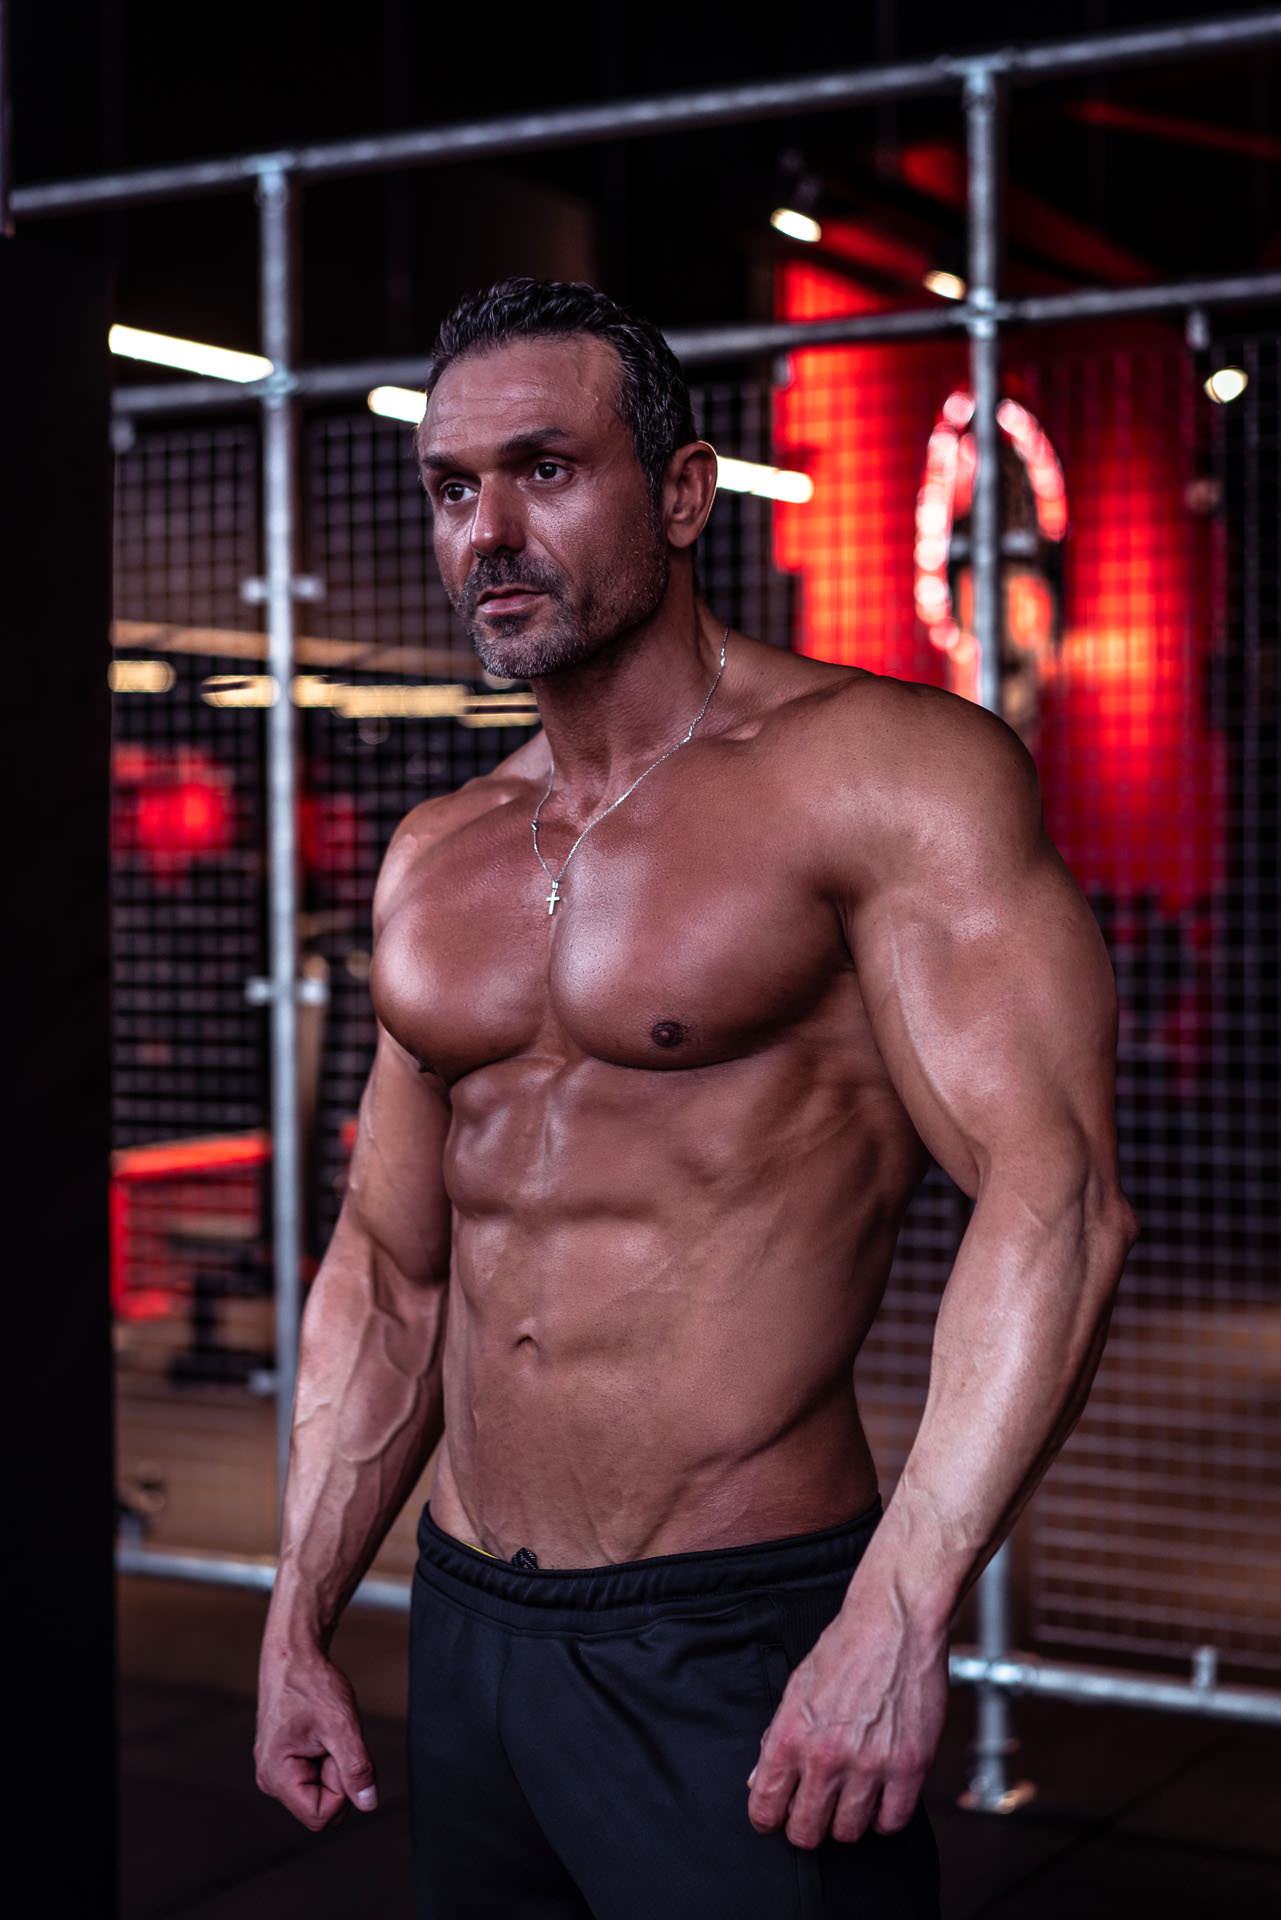 2019-03-04 - Enzo - Muscle & Fitness - 06802 - 1920px